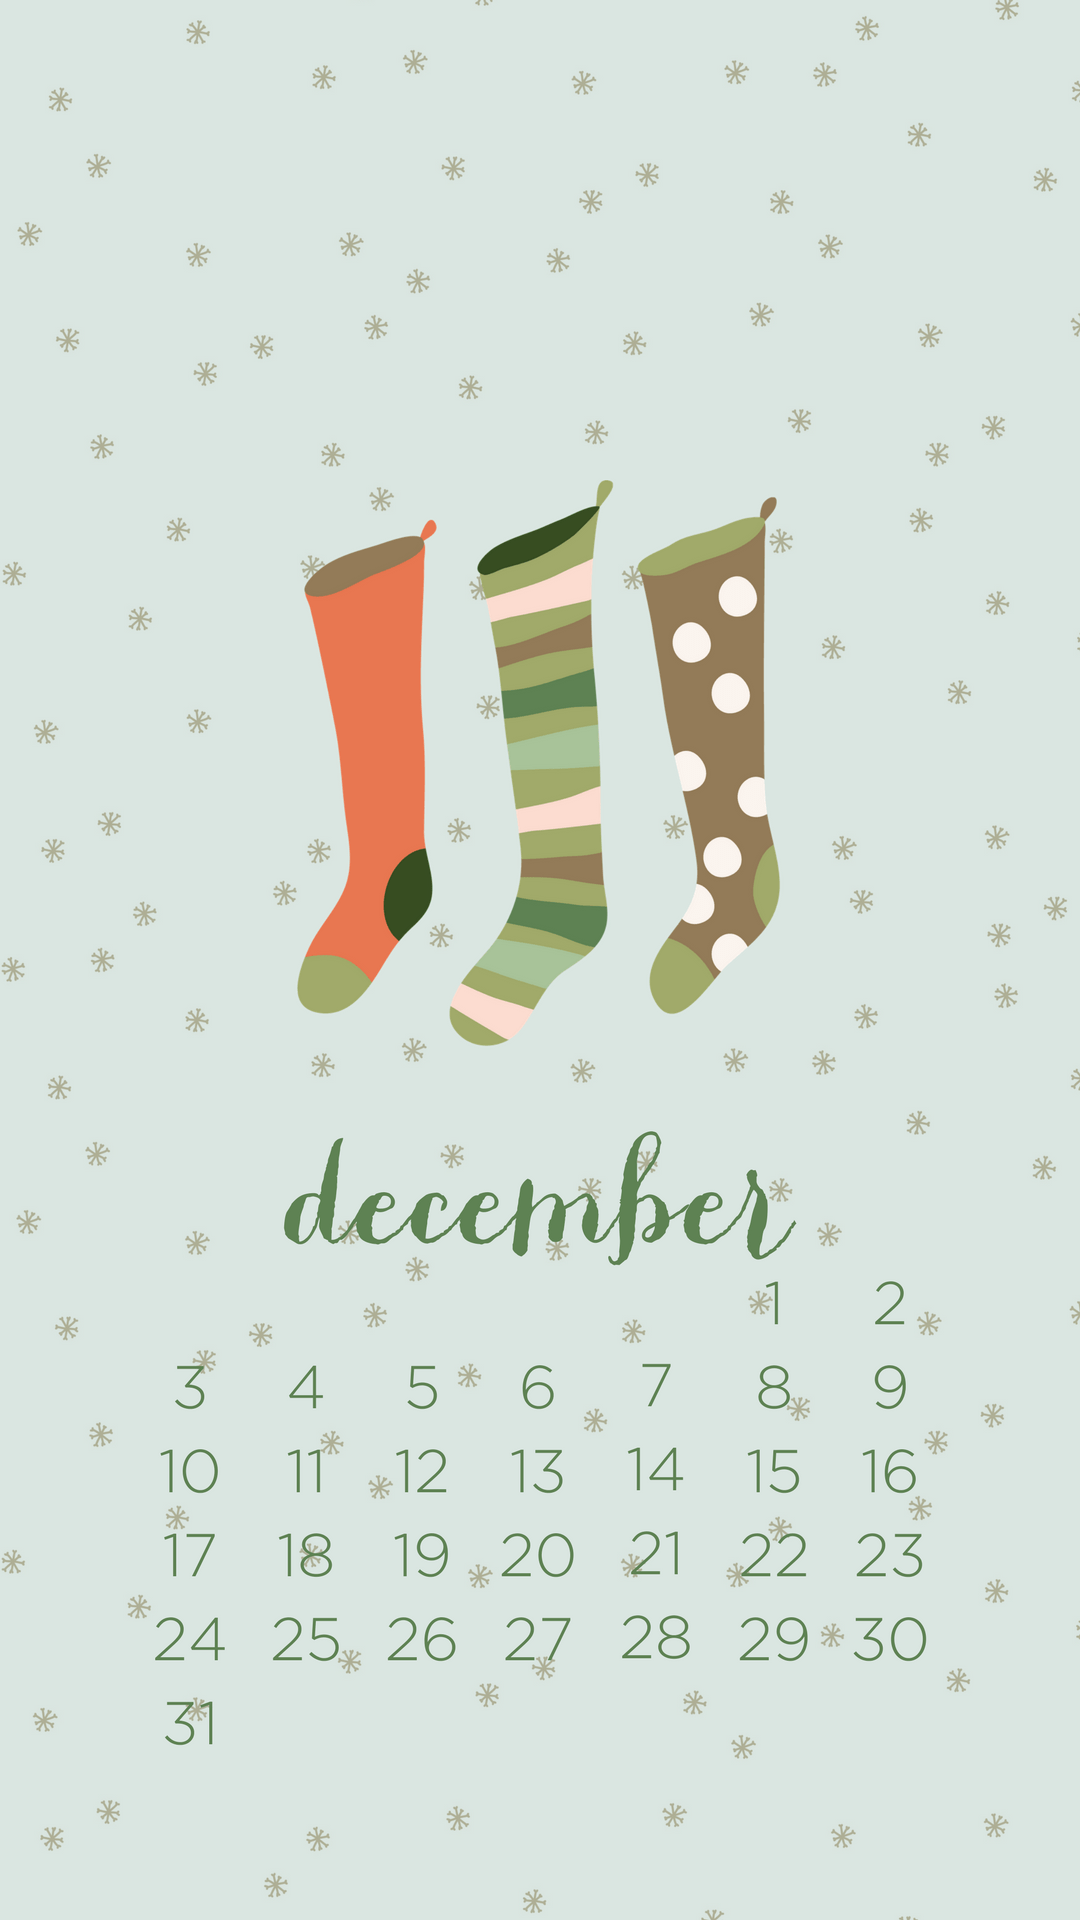 december 2018 iphone wallpaper calendar | maxcalendars | pinterest